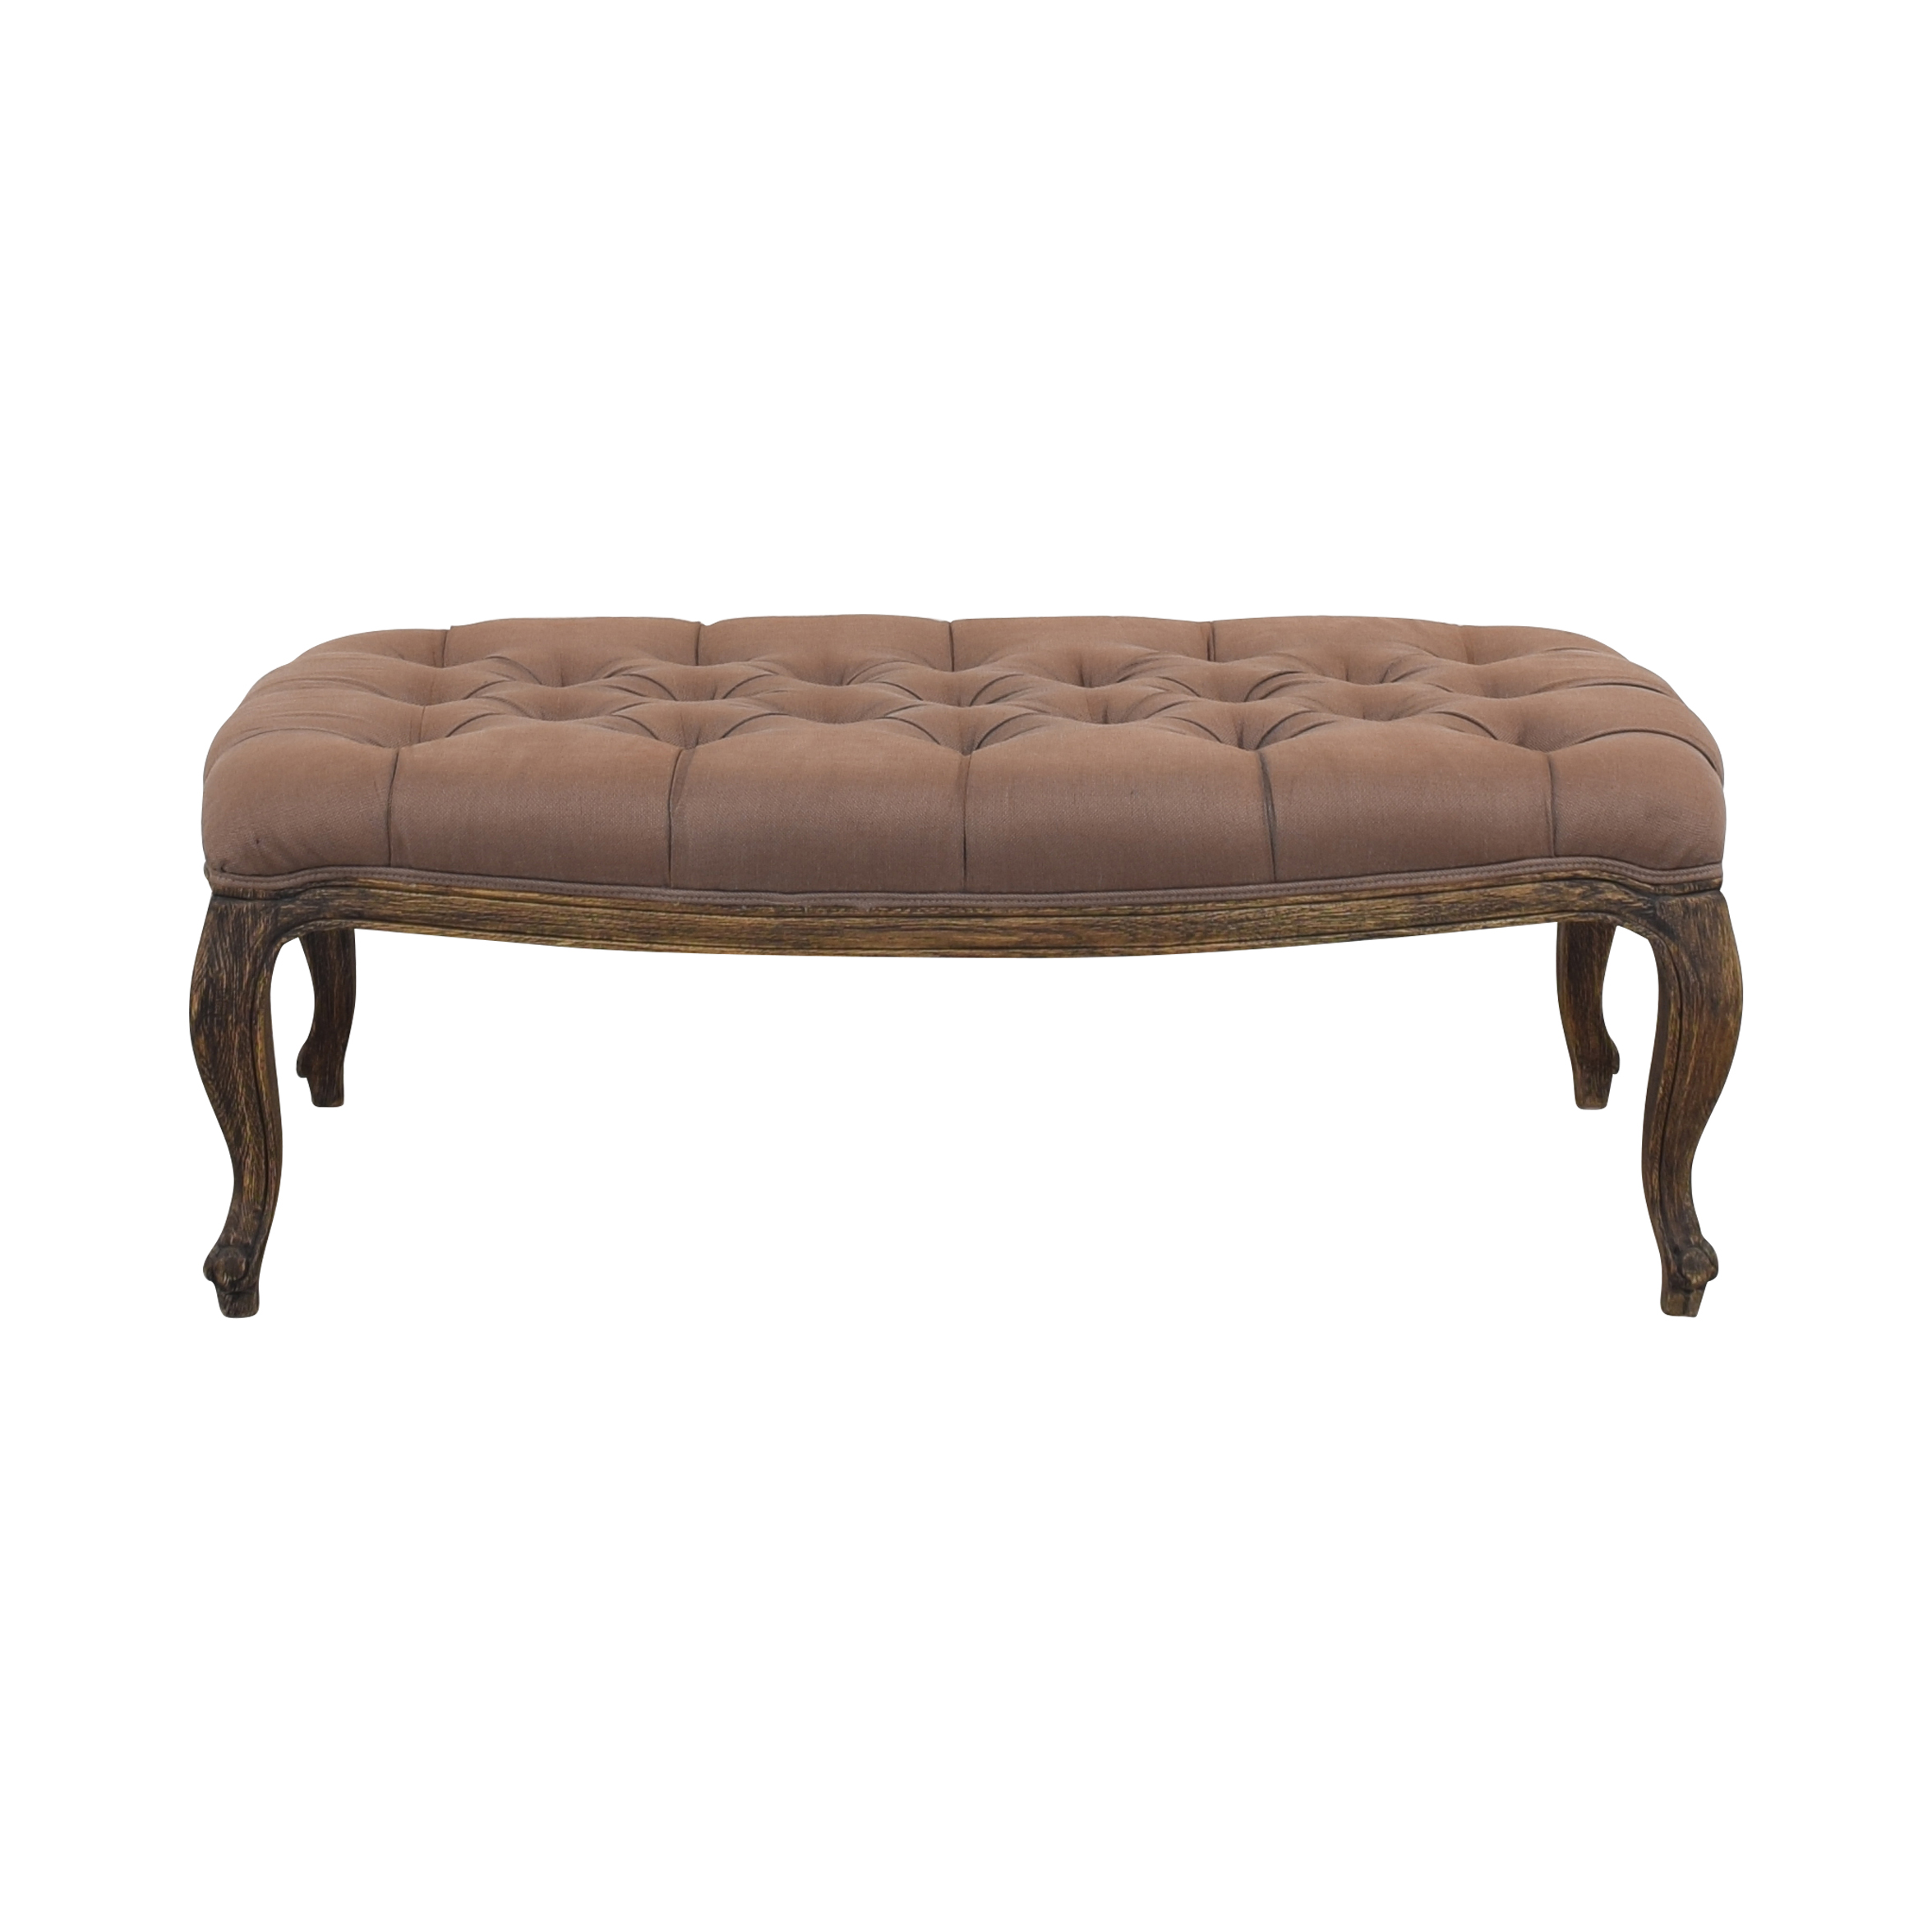 Wayfair Bella Collection Ottoman sale